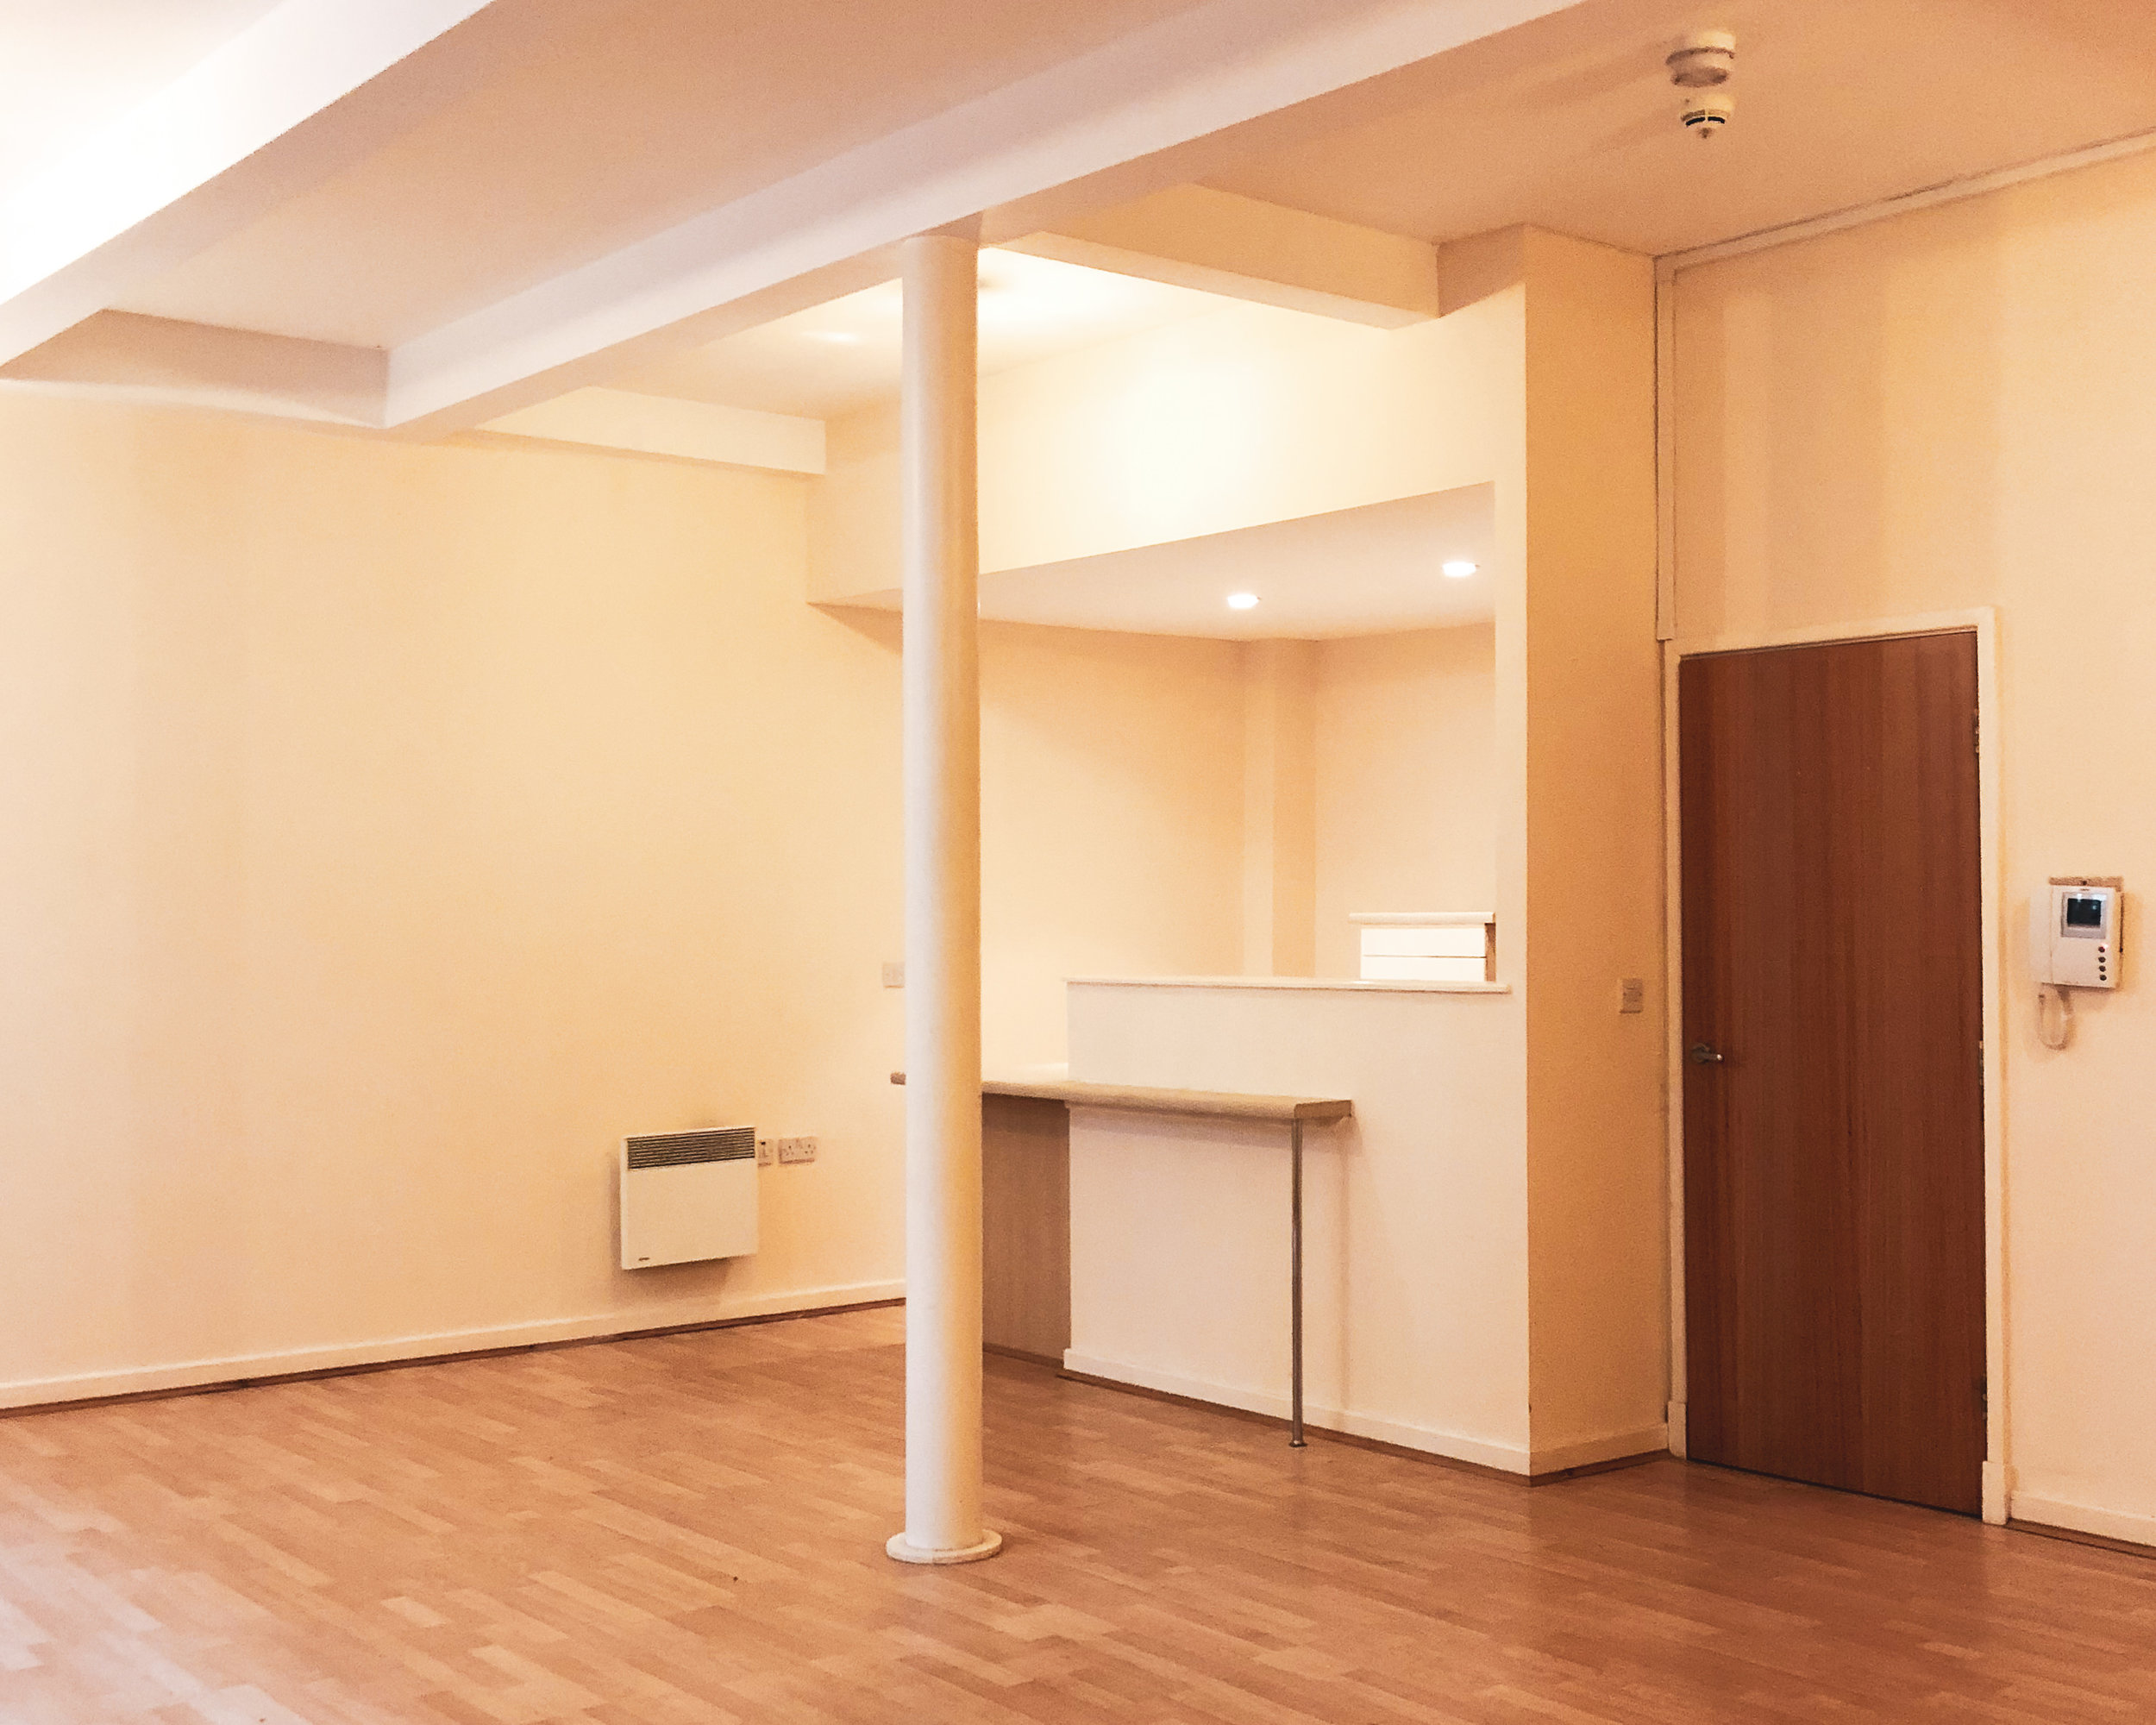 Loft 6 - One bedroomed apartment